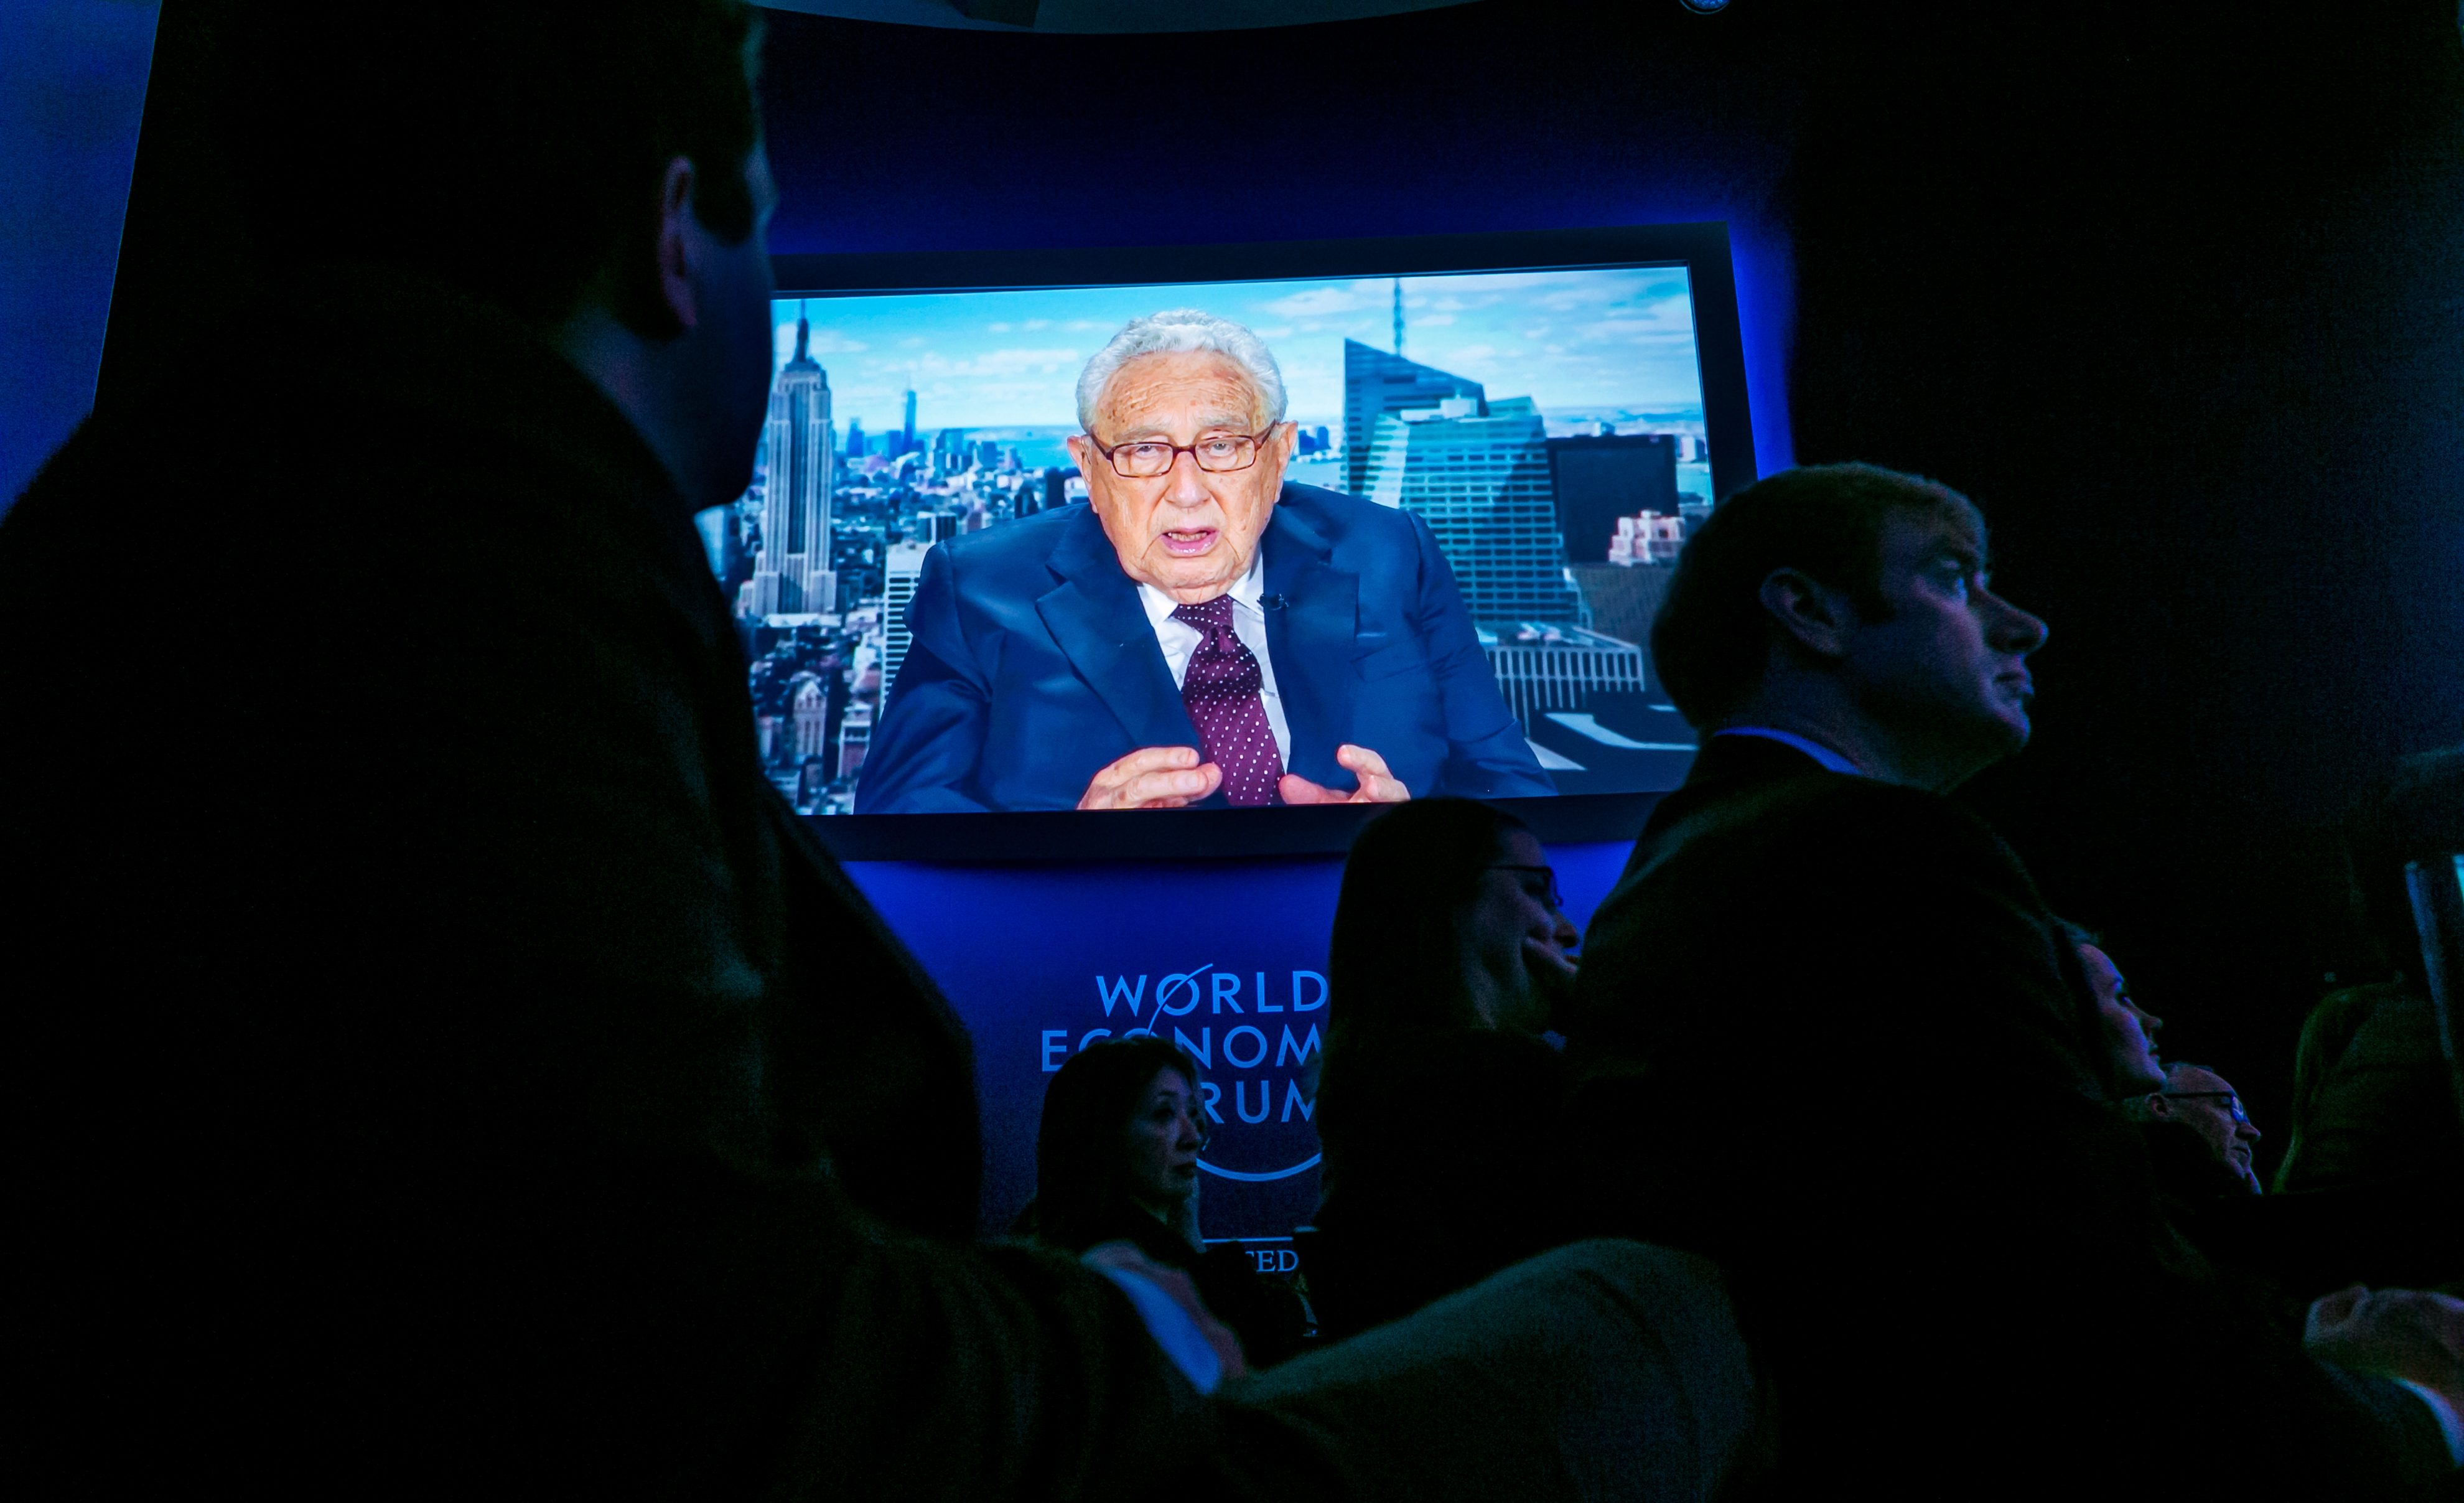 Annual Meeting of the World Economic Forum in Davos 2017